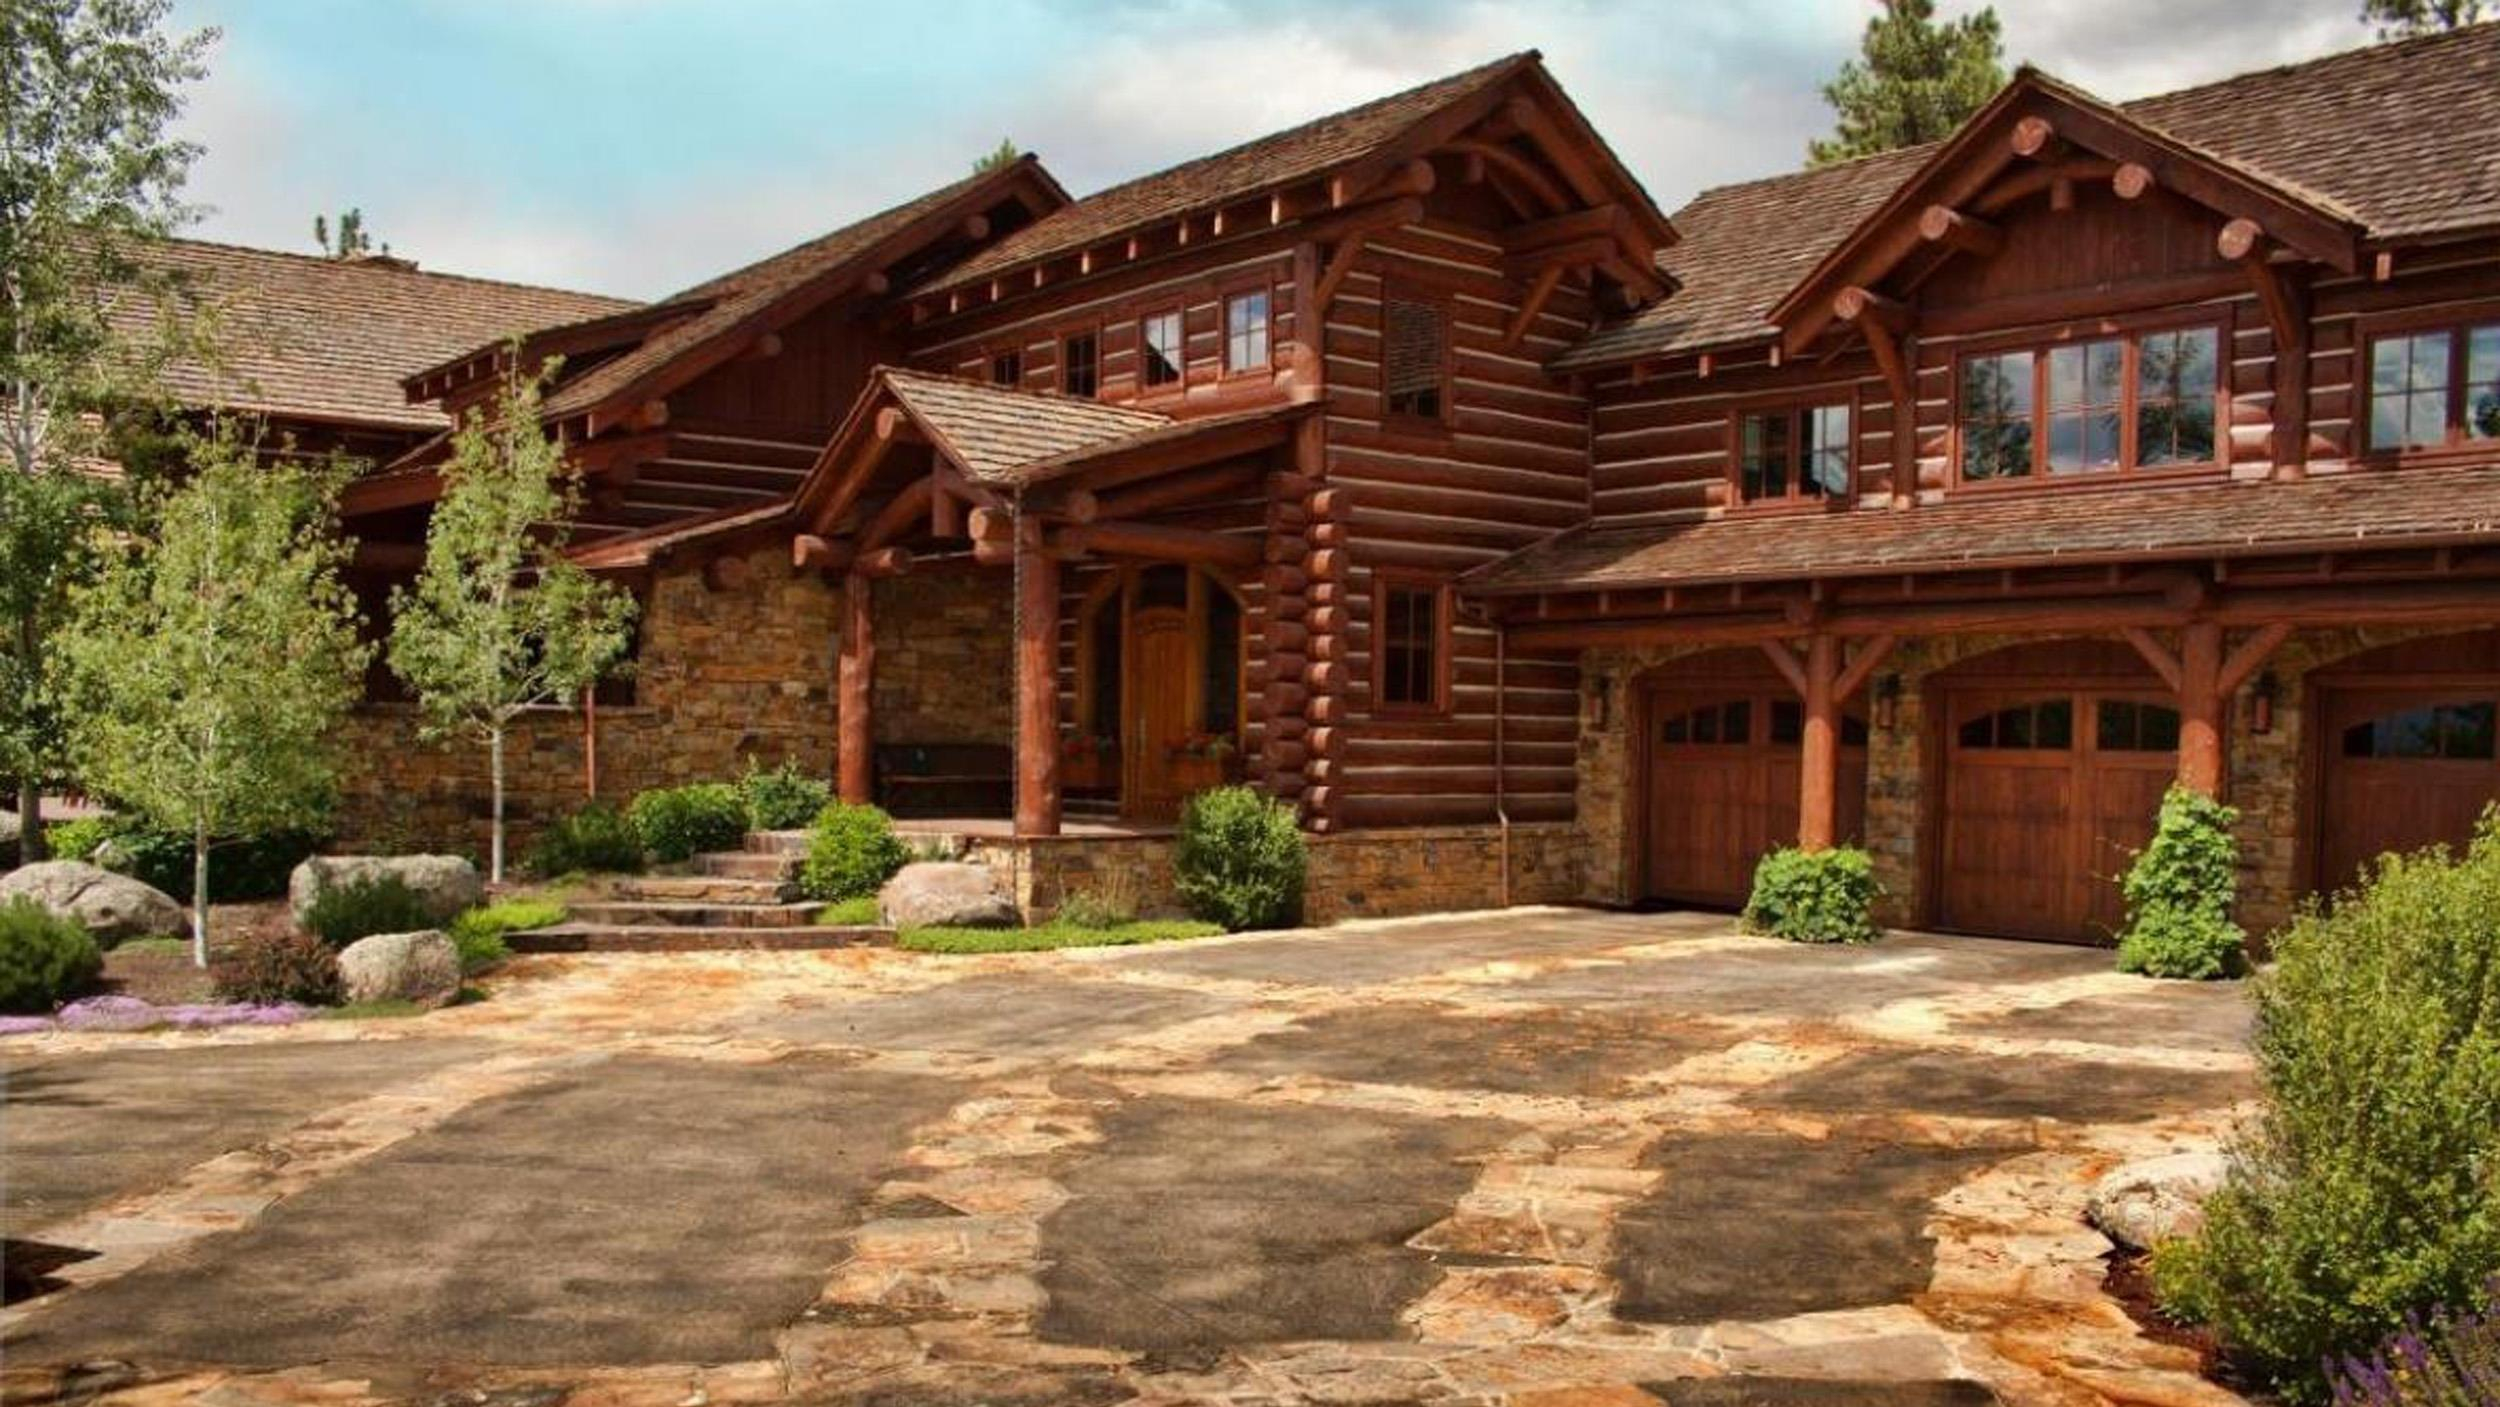 Very Impressive portraiture of Lincoln Log Homes Related Keywords & Suggestions Lincoln Log Homes  with #A26C29 color and 2500x1407 pixels